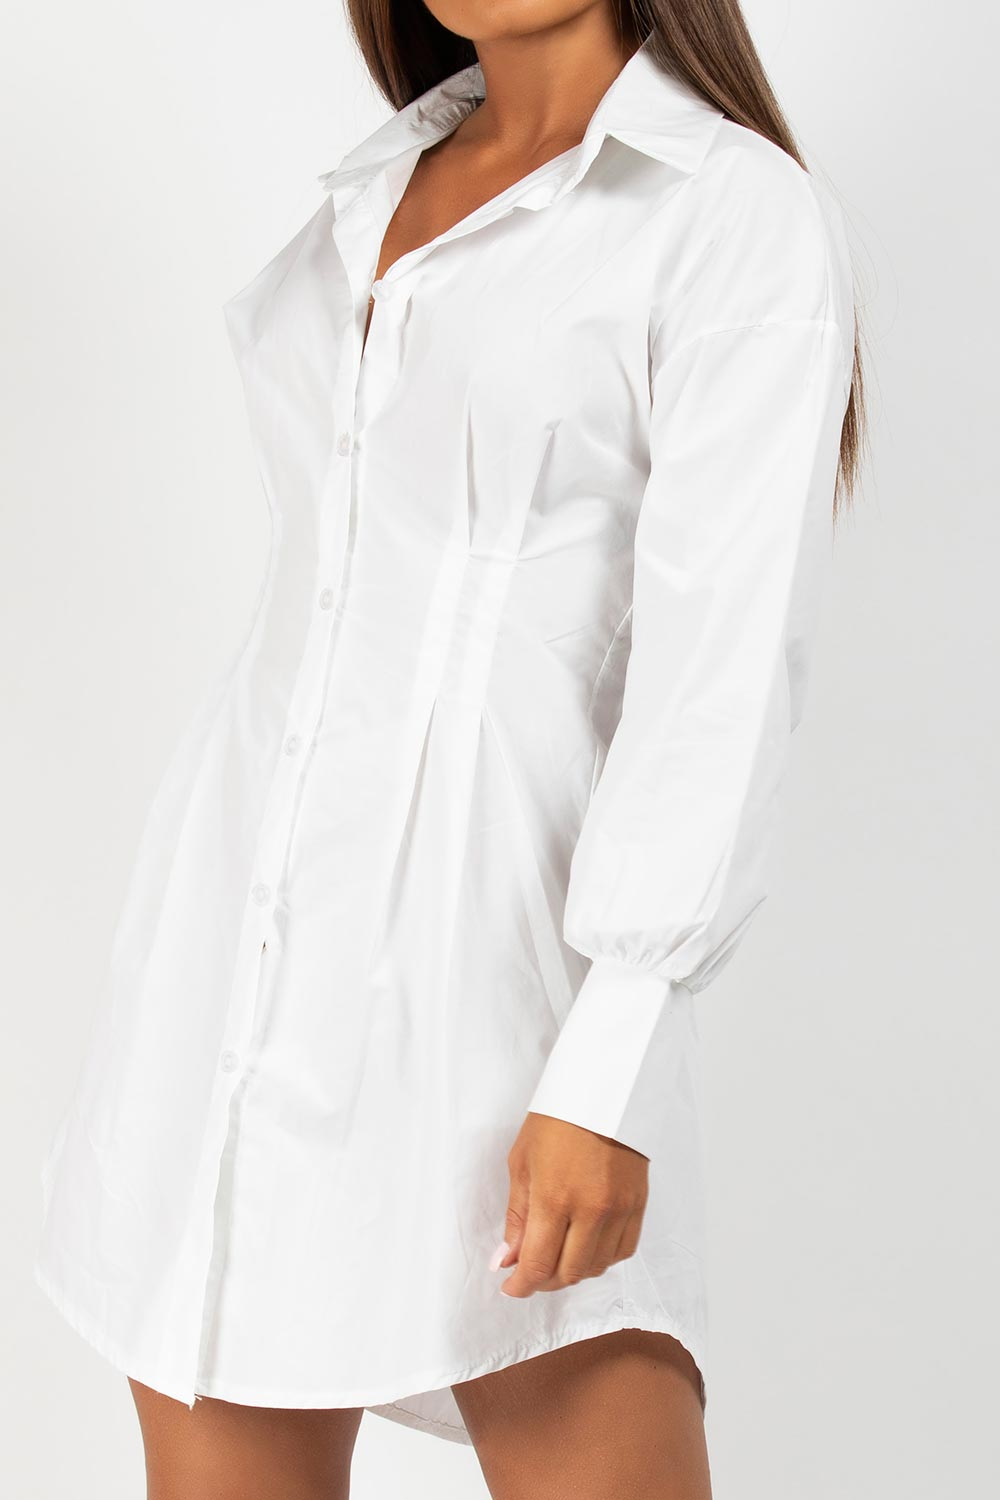 white cinched waist shirt dress